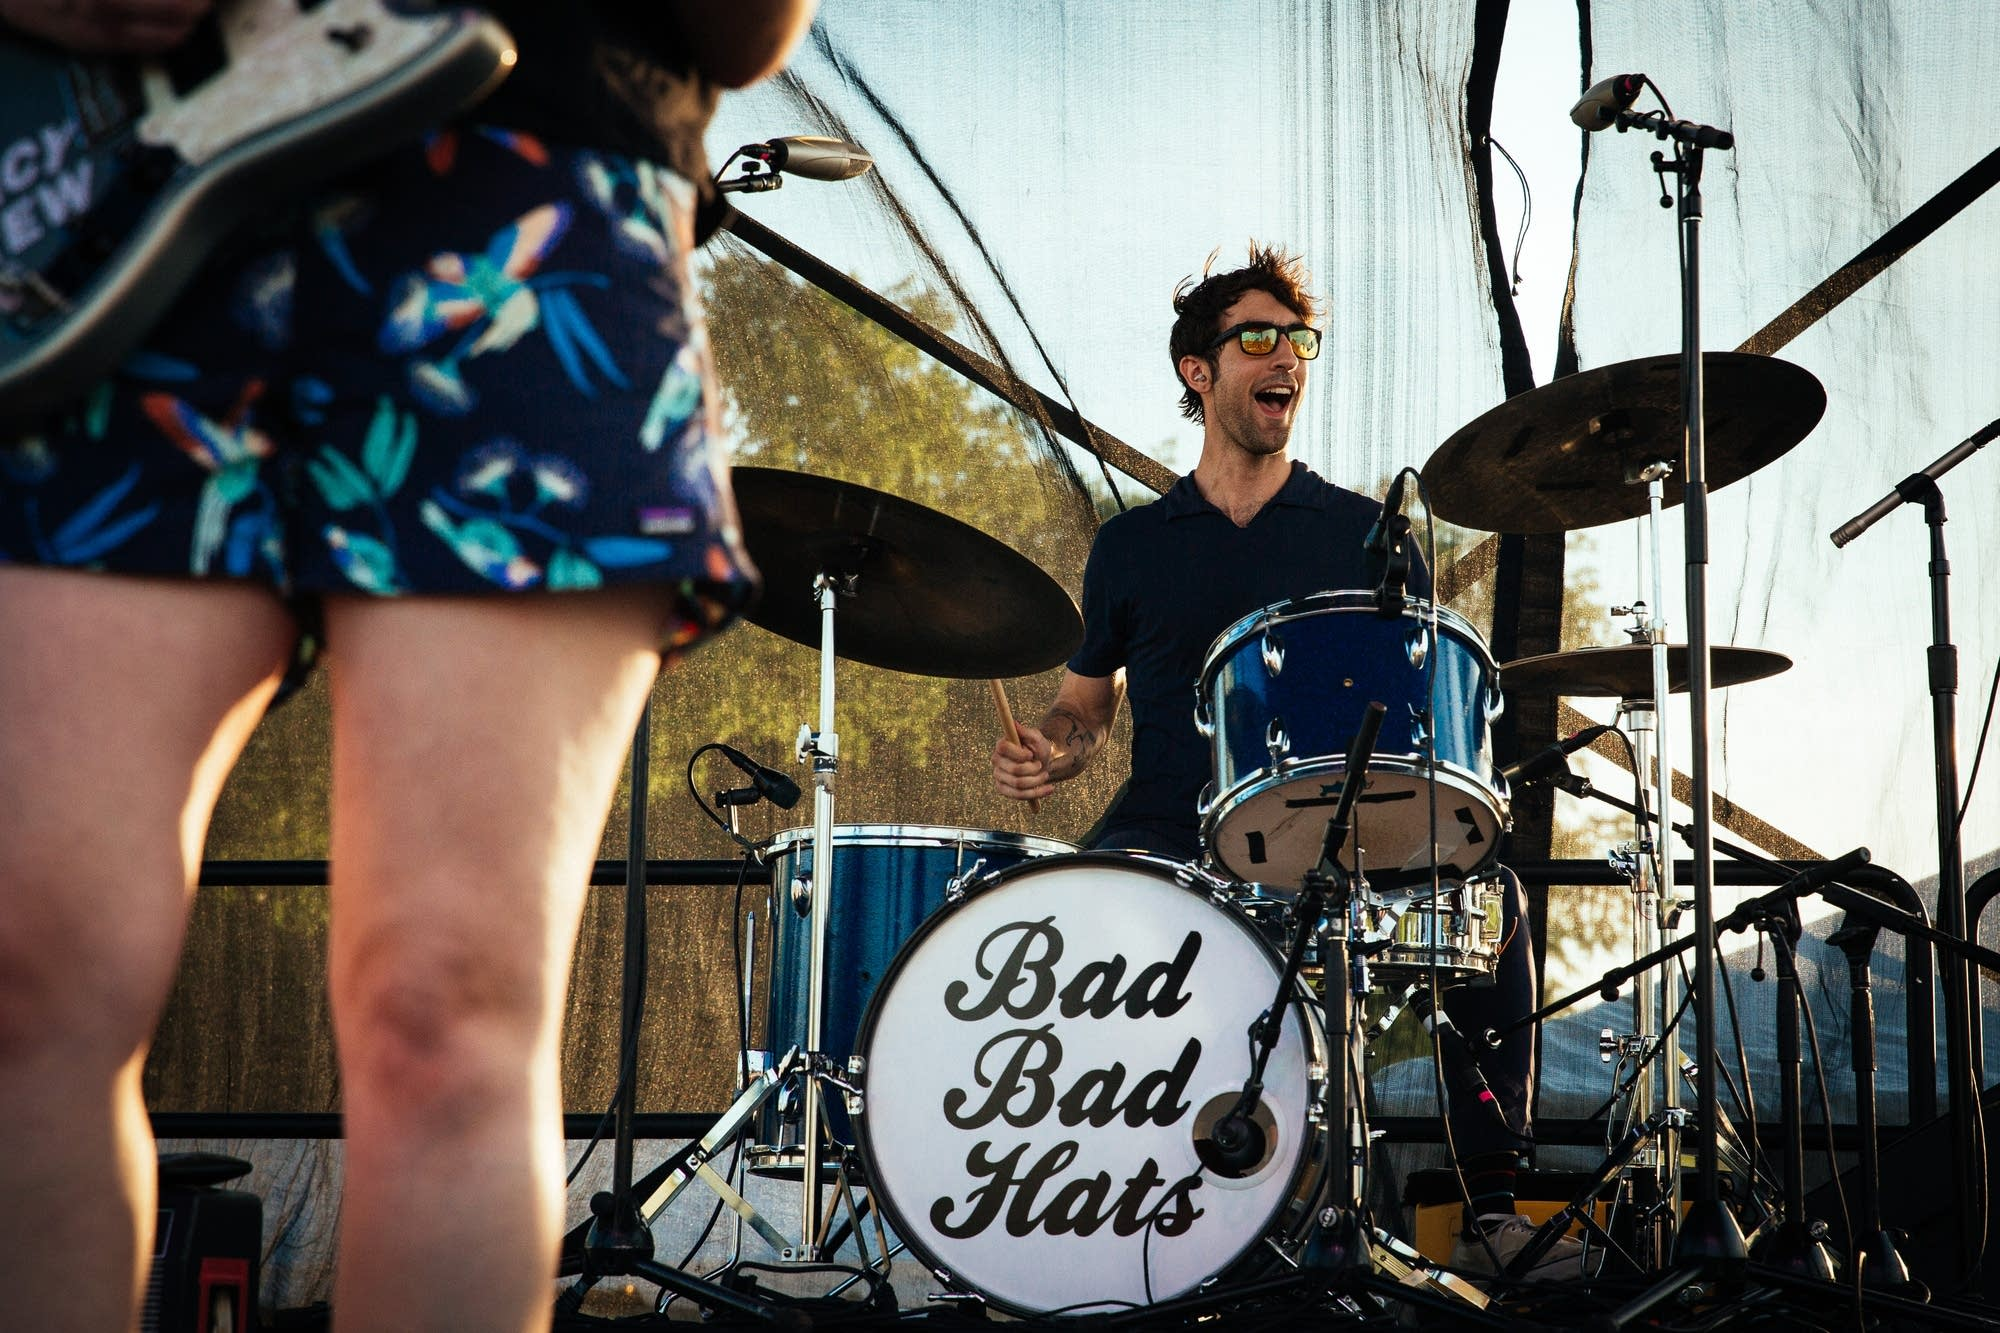 Bad Bad Hats perform at Rock the Garden 2019